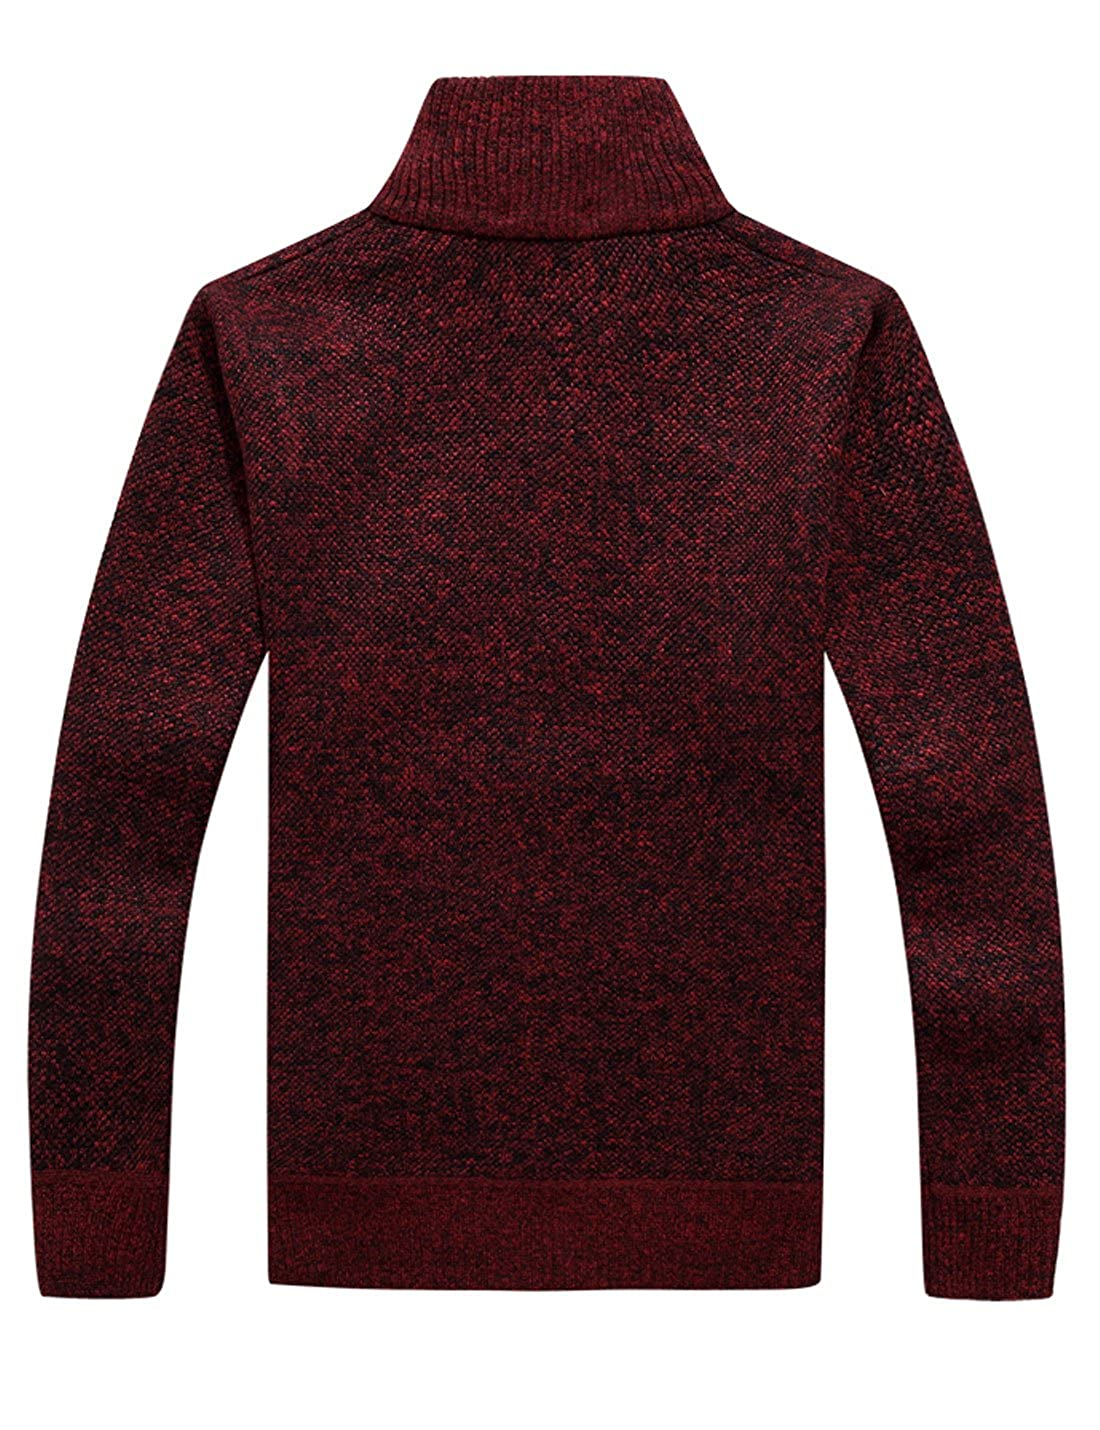 de38e388890a7 Yeokou Men's Casual Slim Full Zip Thick Knitted Cardigan Sweaters with  Pockets at Amazon Men's Clothing store: